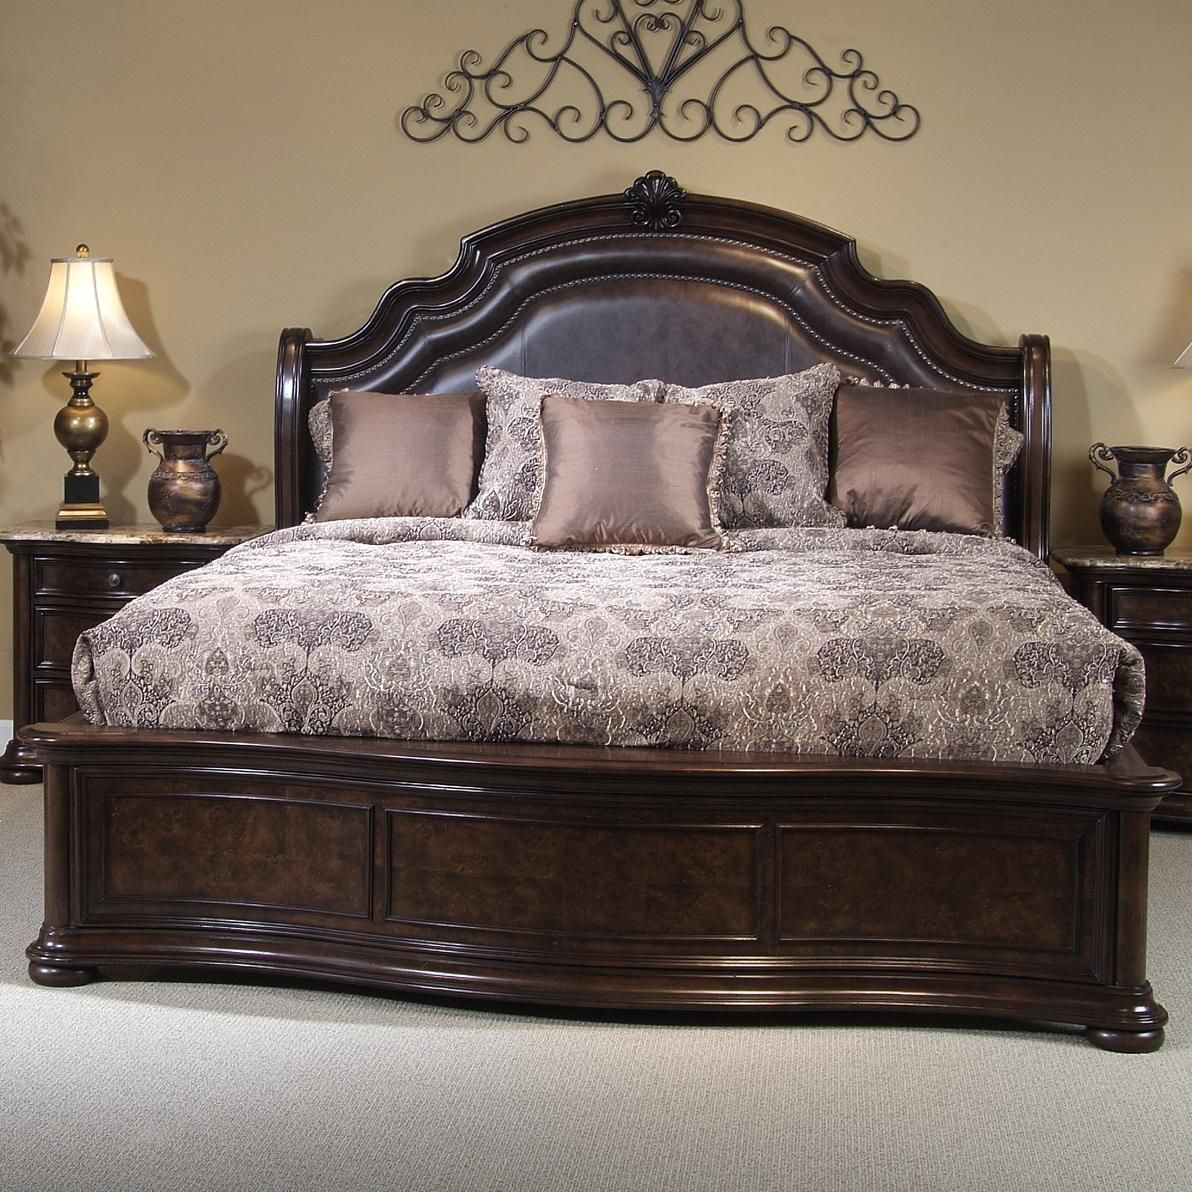 Beautiful King Size Bed Frame Using Brown Leather Headboard And Classy  Pattern Bedding Also Wooden Bedside